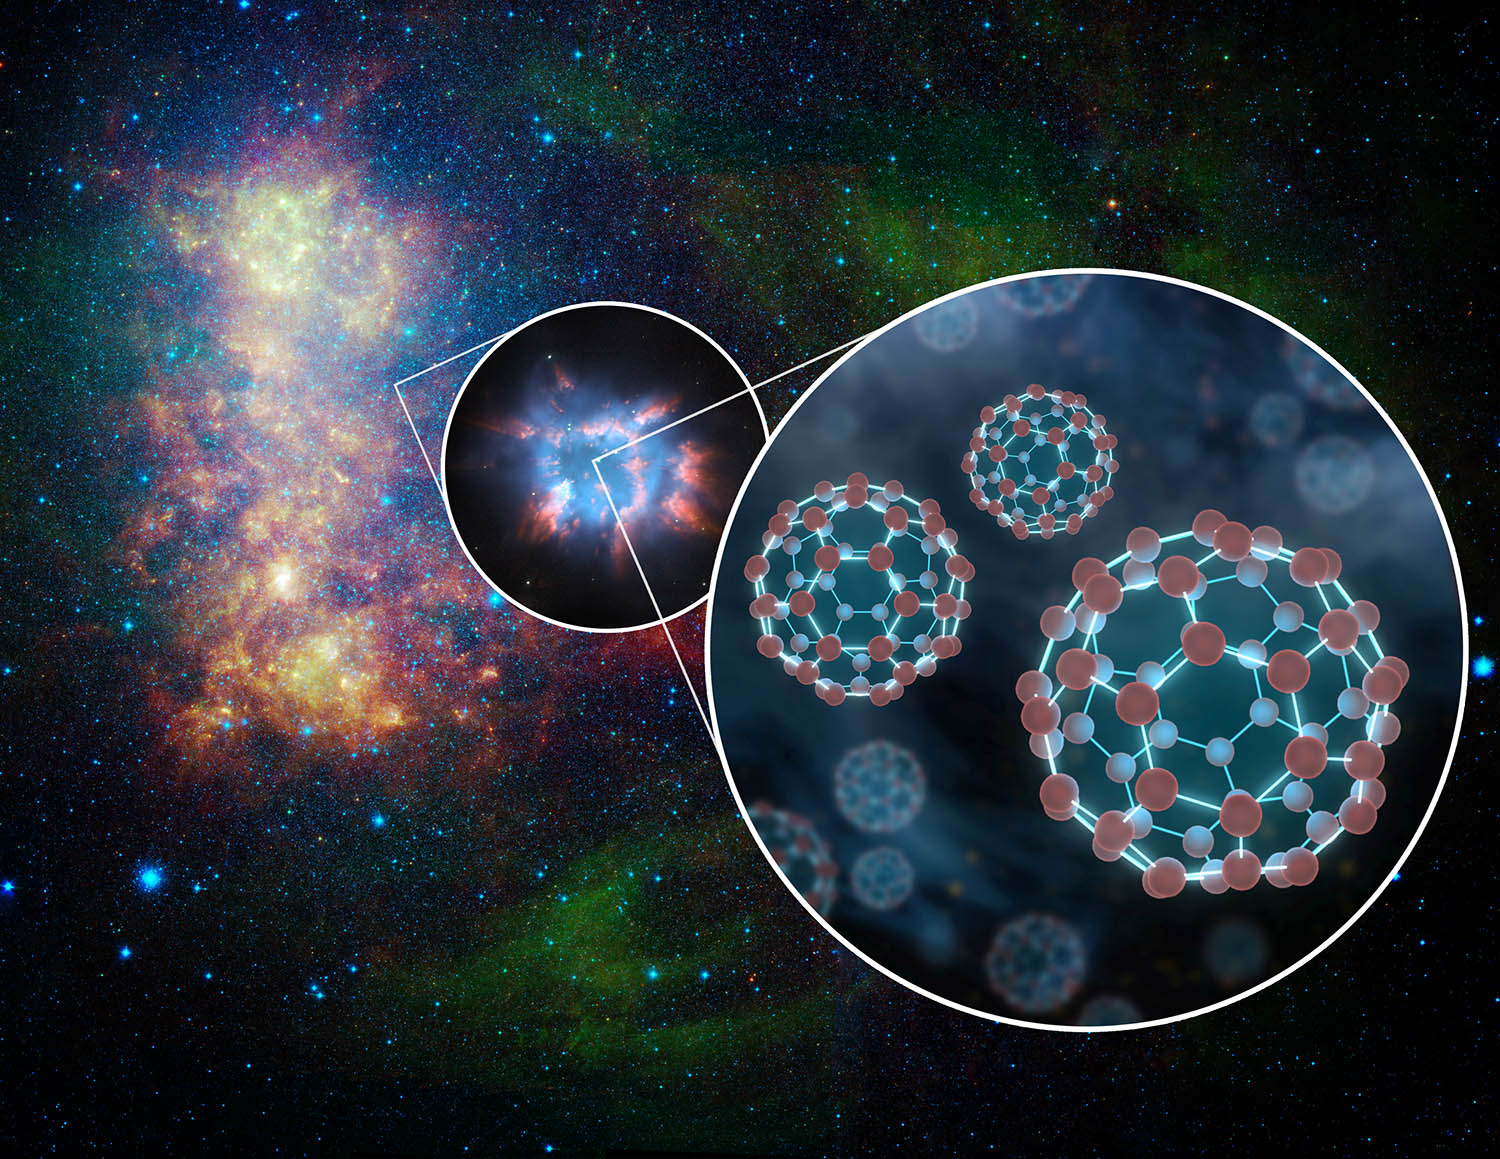 Representation of fullerenes flowing from the planetary nebulaImage Credit: NASA/jpi-caltech/t.pyle